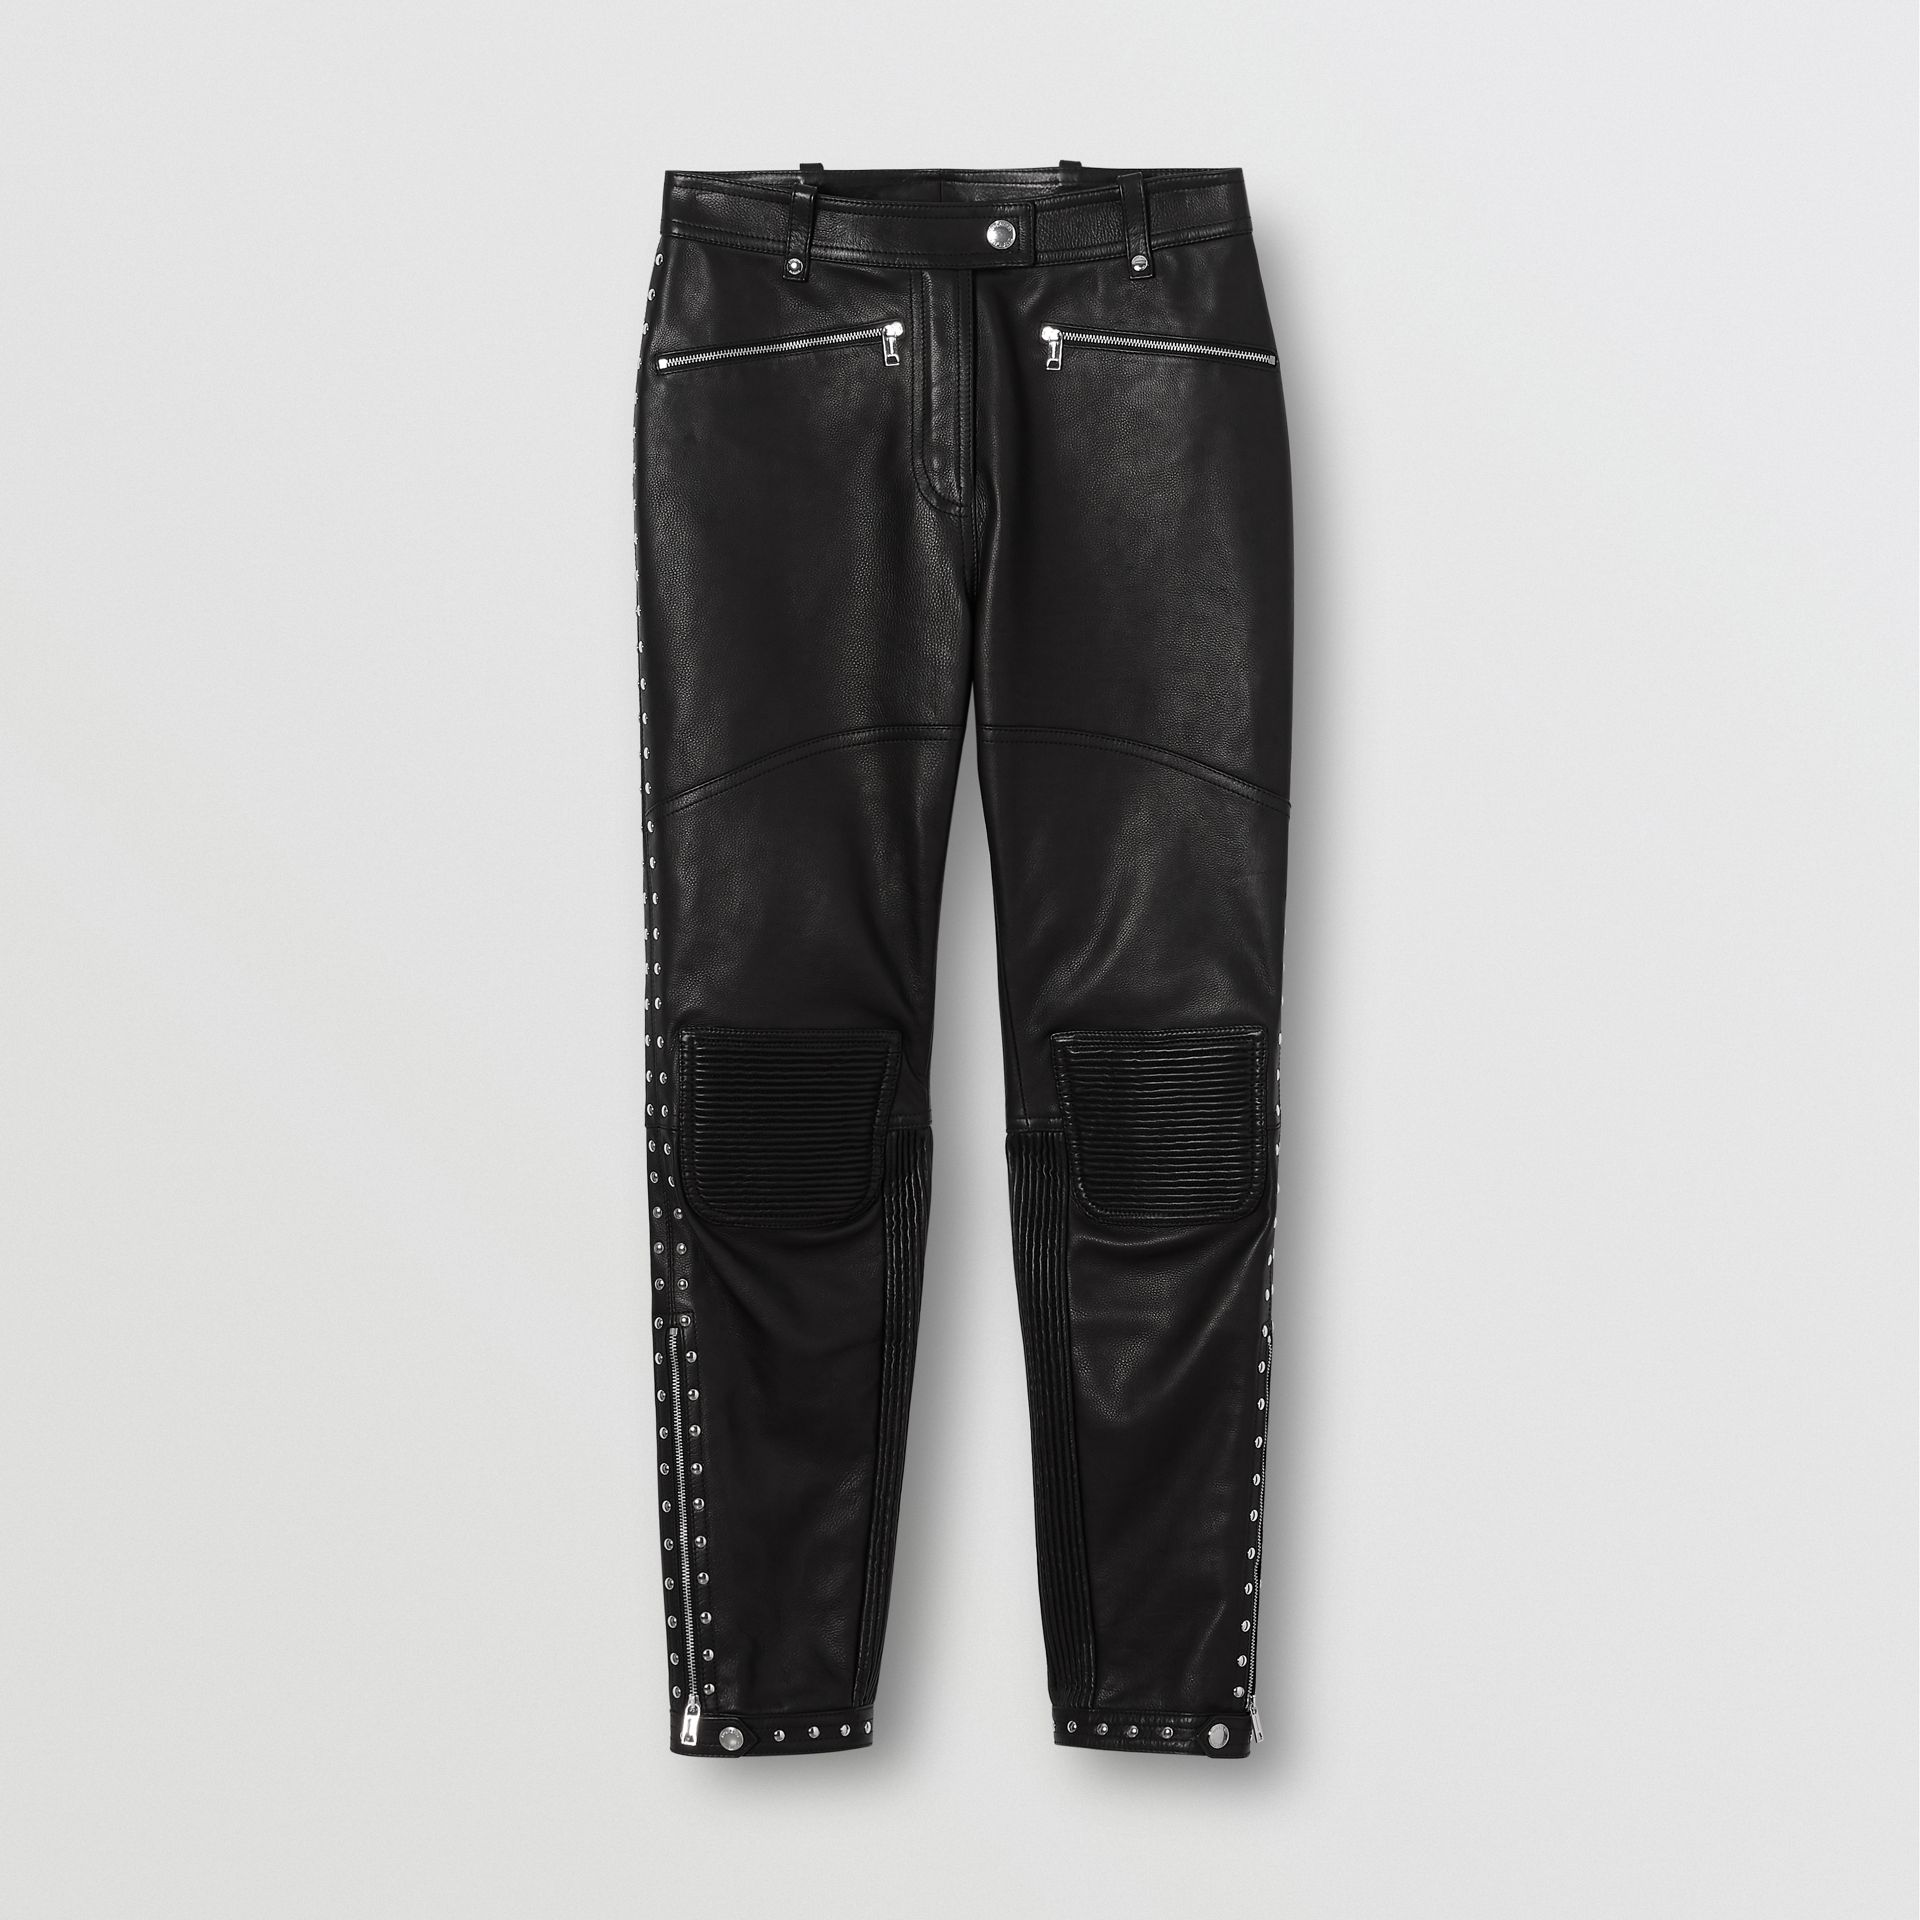 Zip Detail Studded Leather Trousers in Black - Women | Burberry - gallery image 3